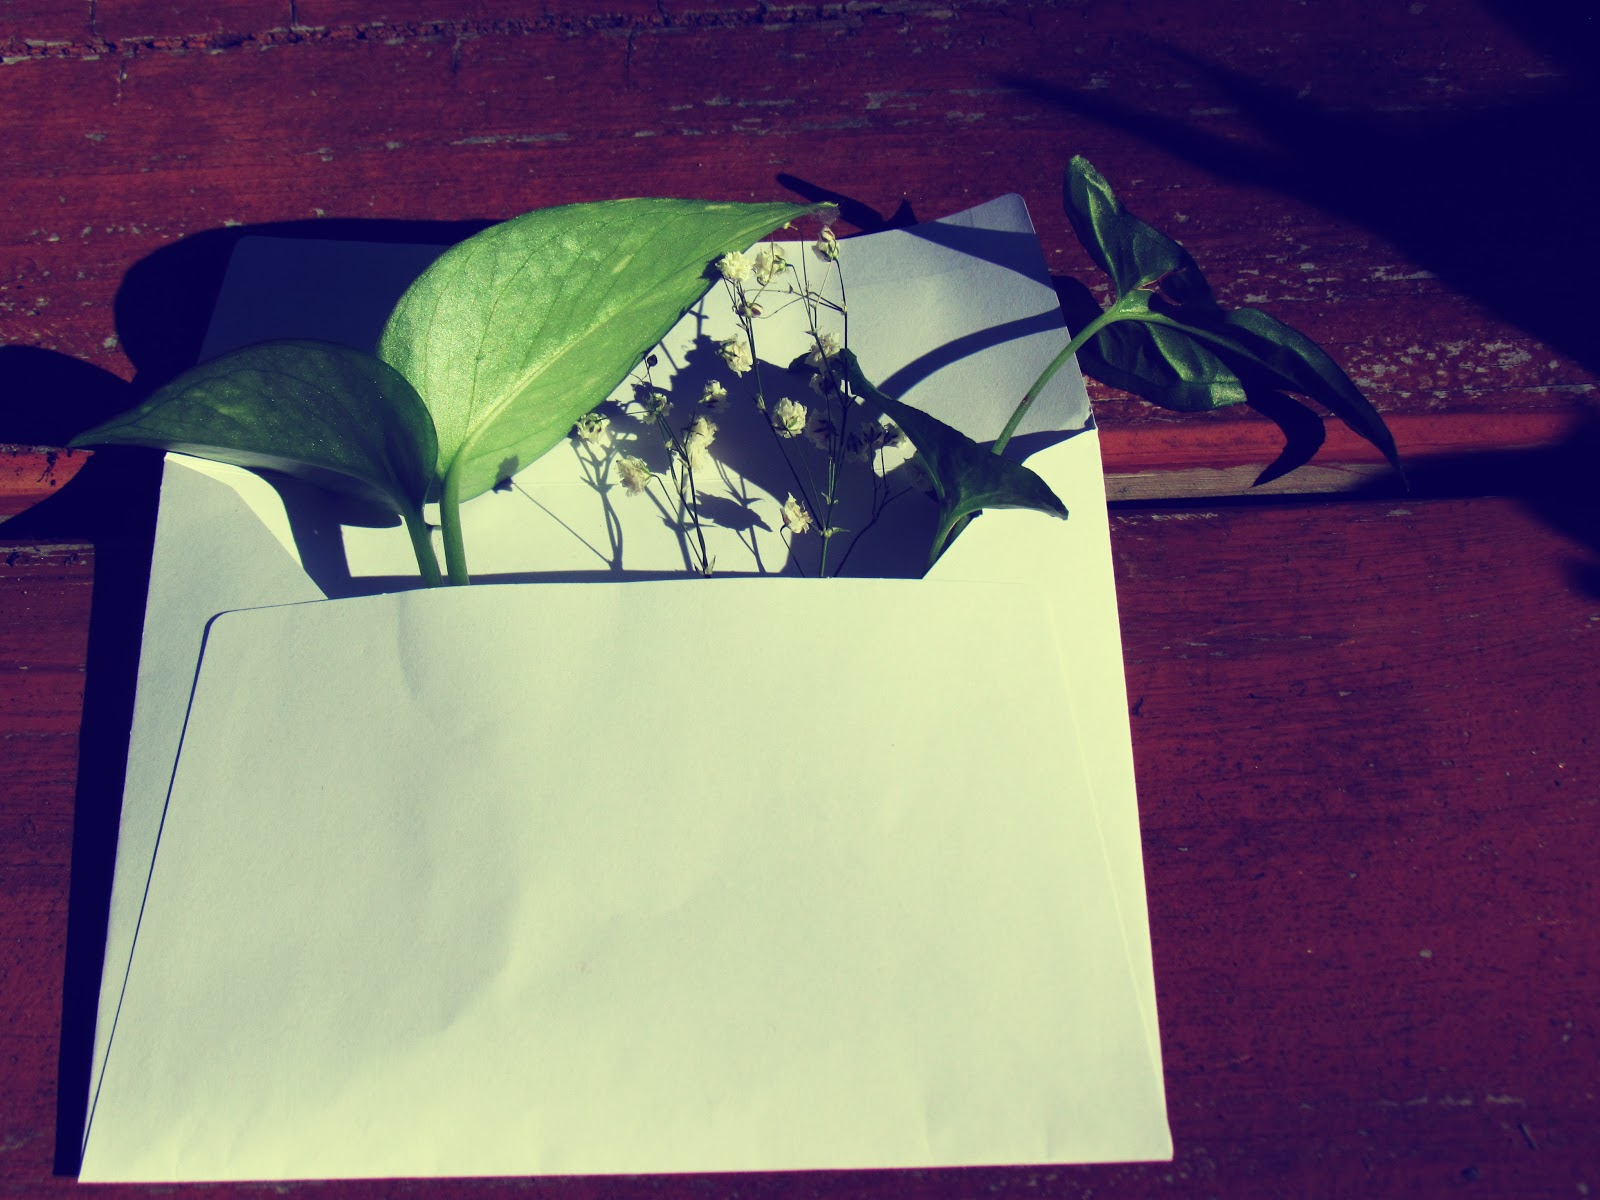 A nature in an envelope with green plant leaves and wildflowers in bloom, natural recycled materials, love notes